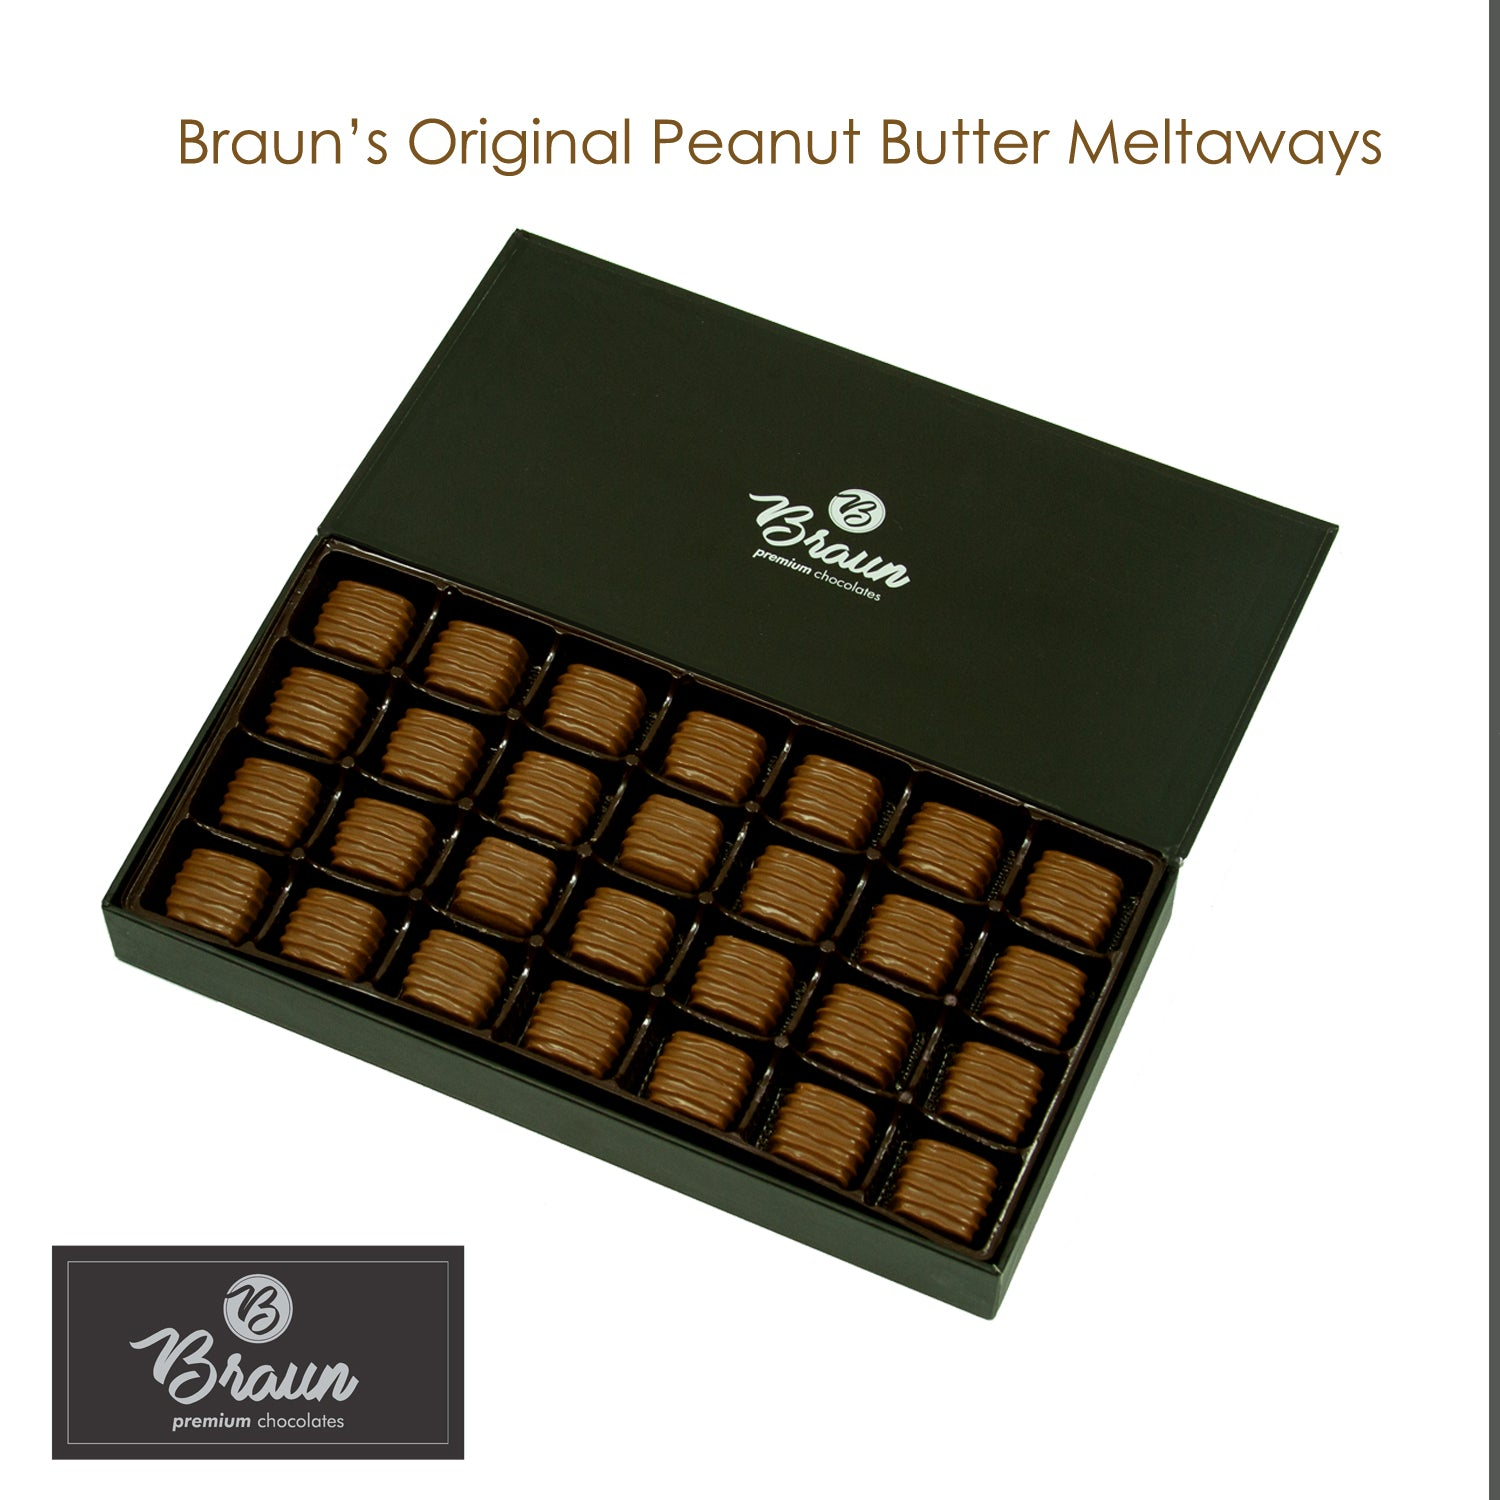 Braun's Peanut Butter Meltaways